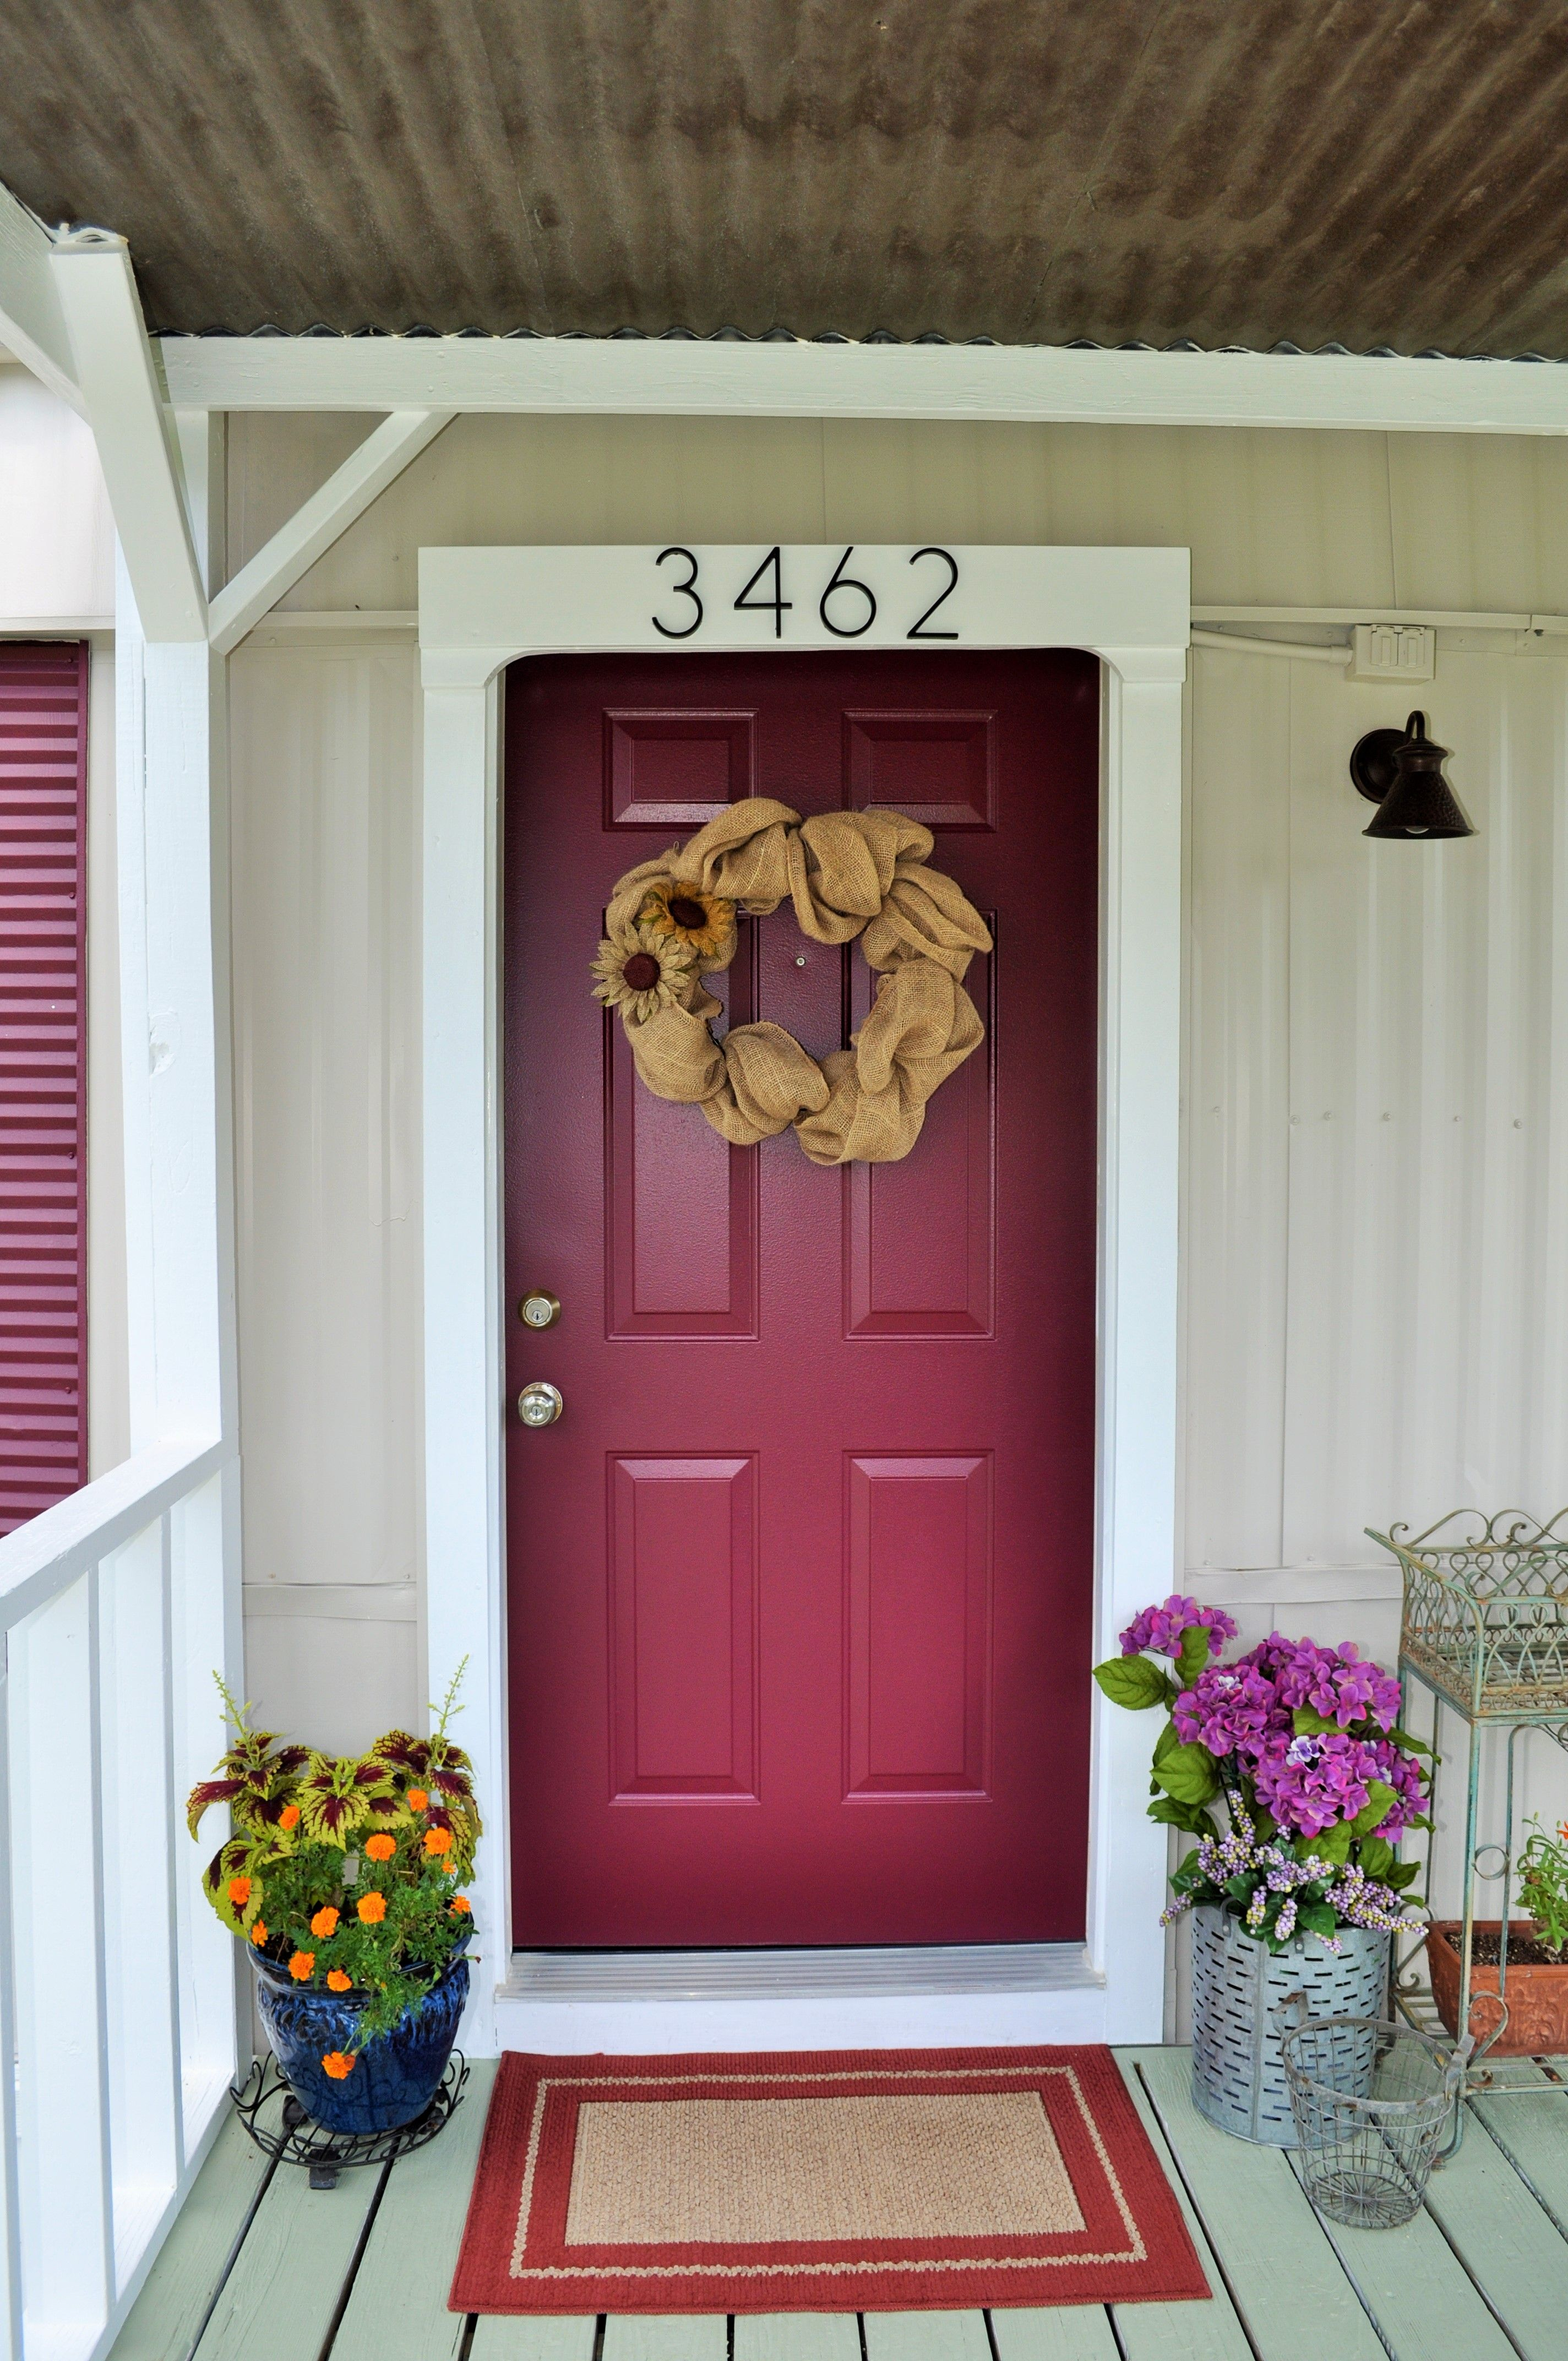 Mobile Home Front Door. This Home Had A Smaller Mobile Home Door. Replaced  With A 36 Inch Standard Size Door.   Home Decoration Guide And Interior  Design ... Part 42